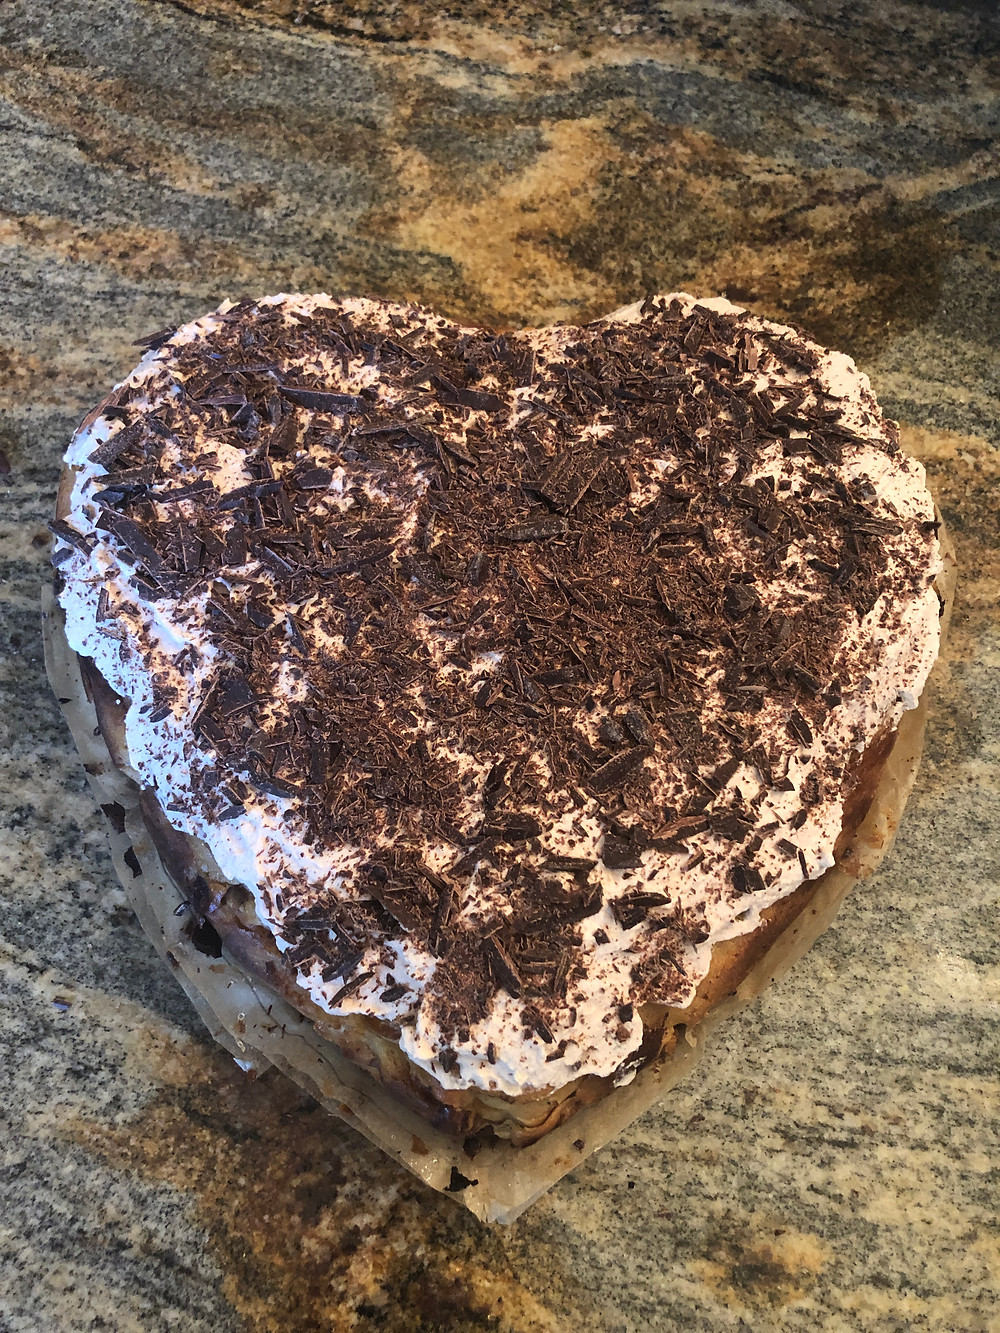 Find my recipe for Tiramisu Cheesecake at the end of this story!